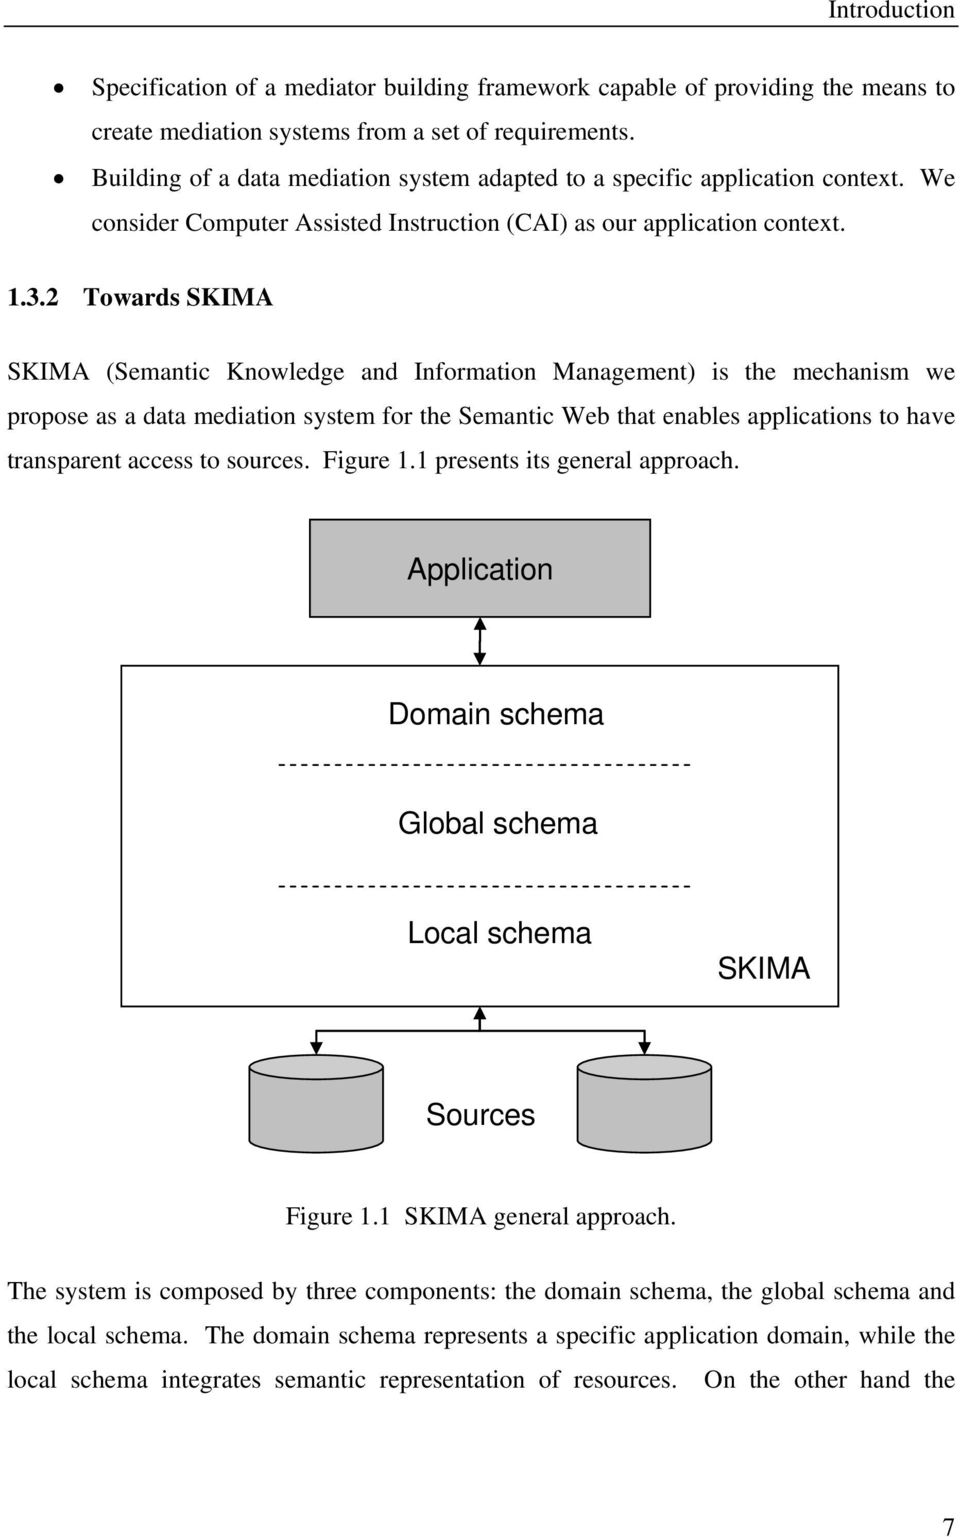 2 Towards SKIMA SKIMA (Semantic Knowledge and Information Management) is the mechanism we propose as a data mediation system for the Semantic Web that enables applications to have transparent access